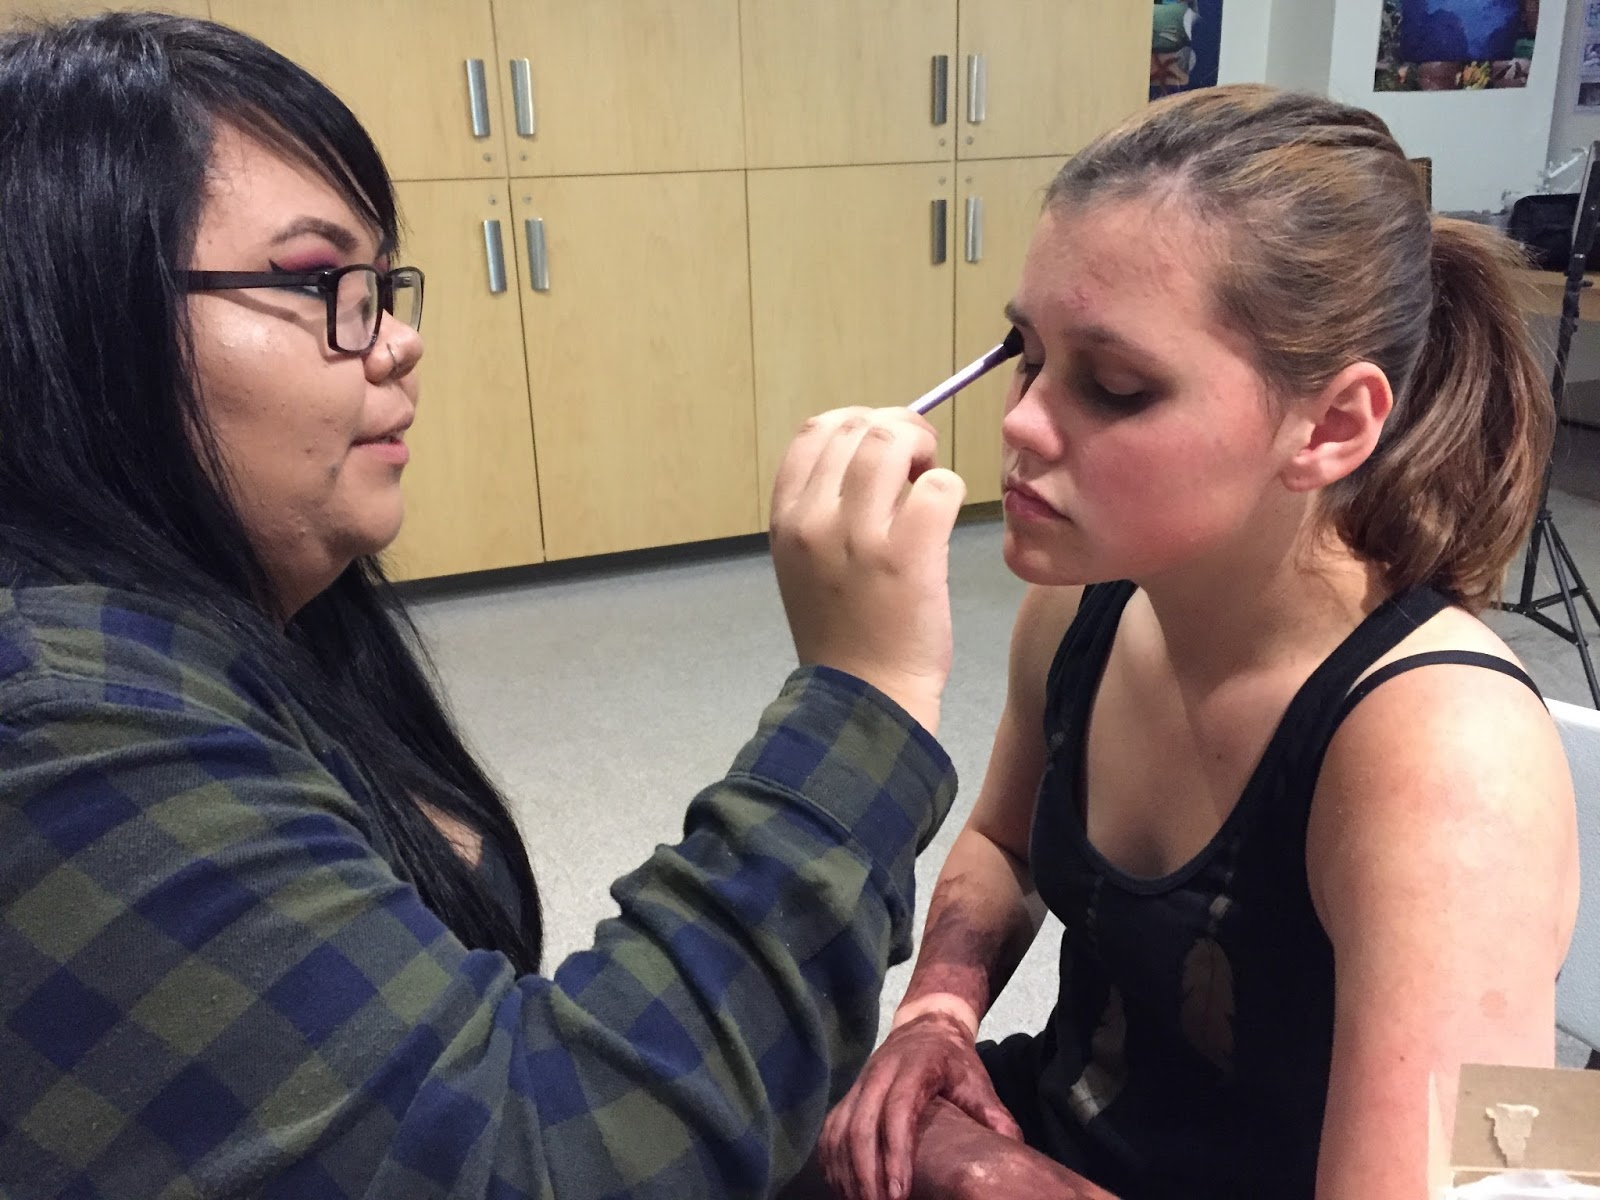 Niccola applies the ghost makeup to Hannah